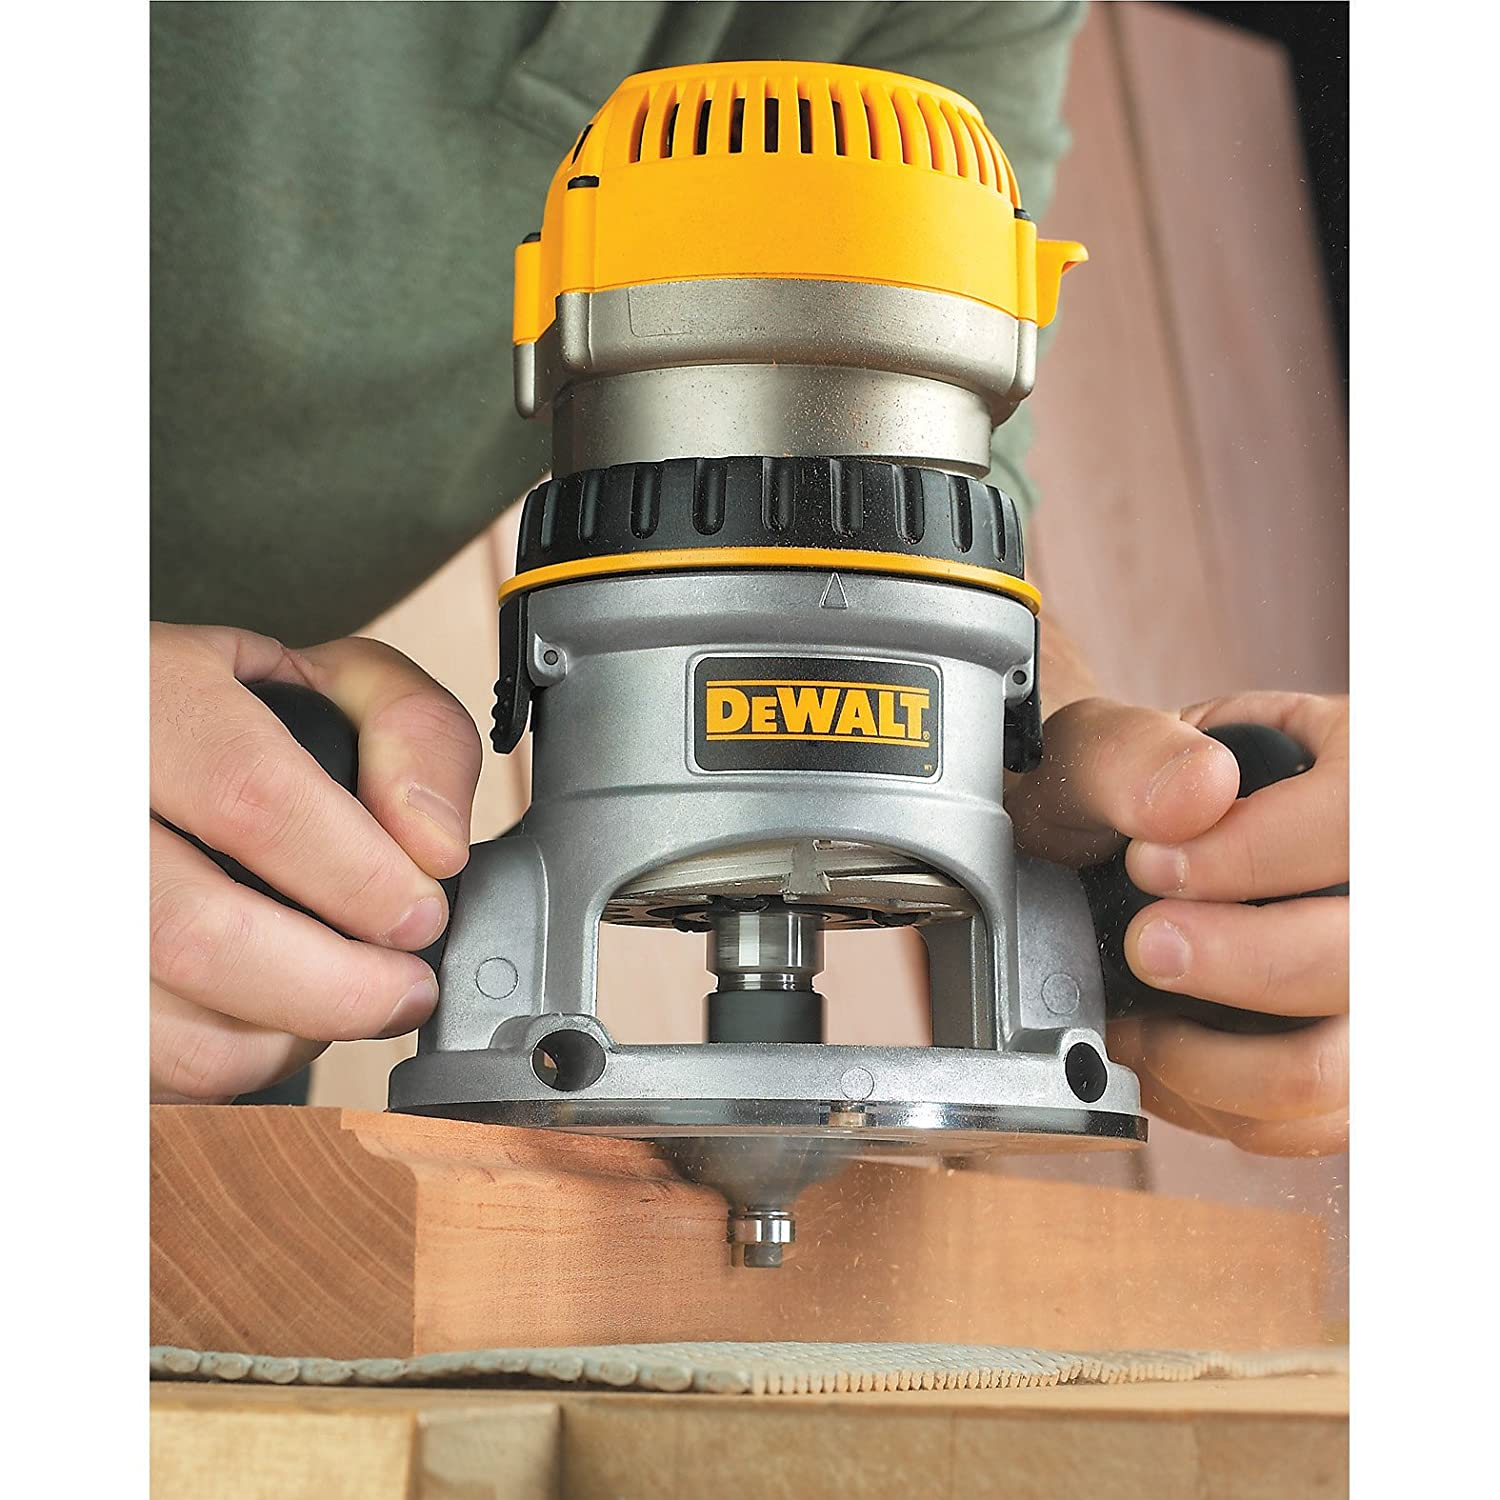 Dewalt dw616 1 34 horsepower fixed base router dewalt dw616 greentooth Gallery